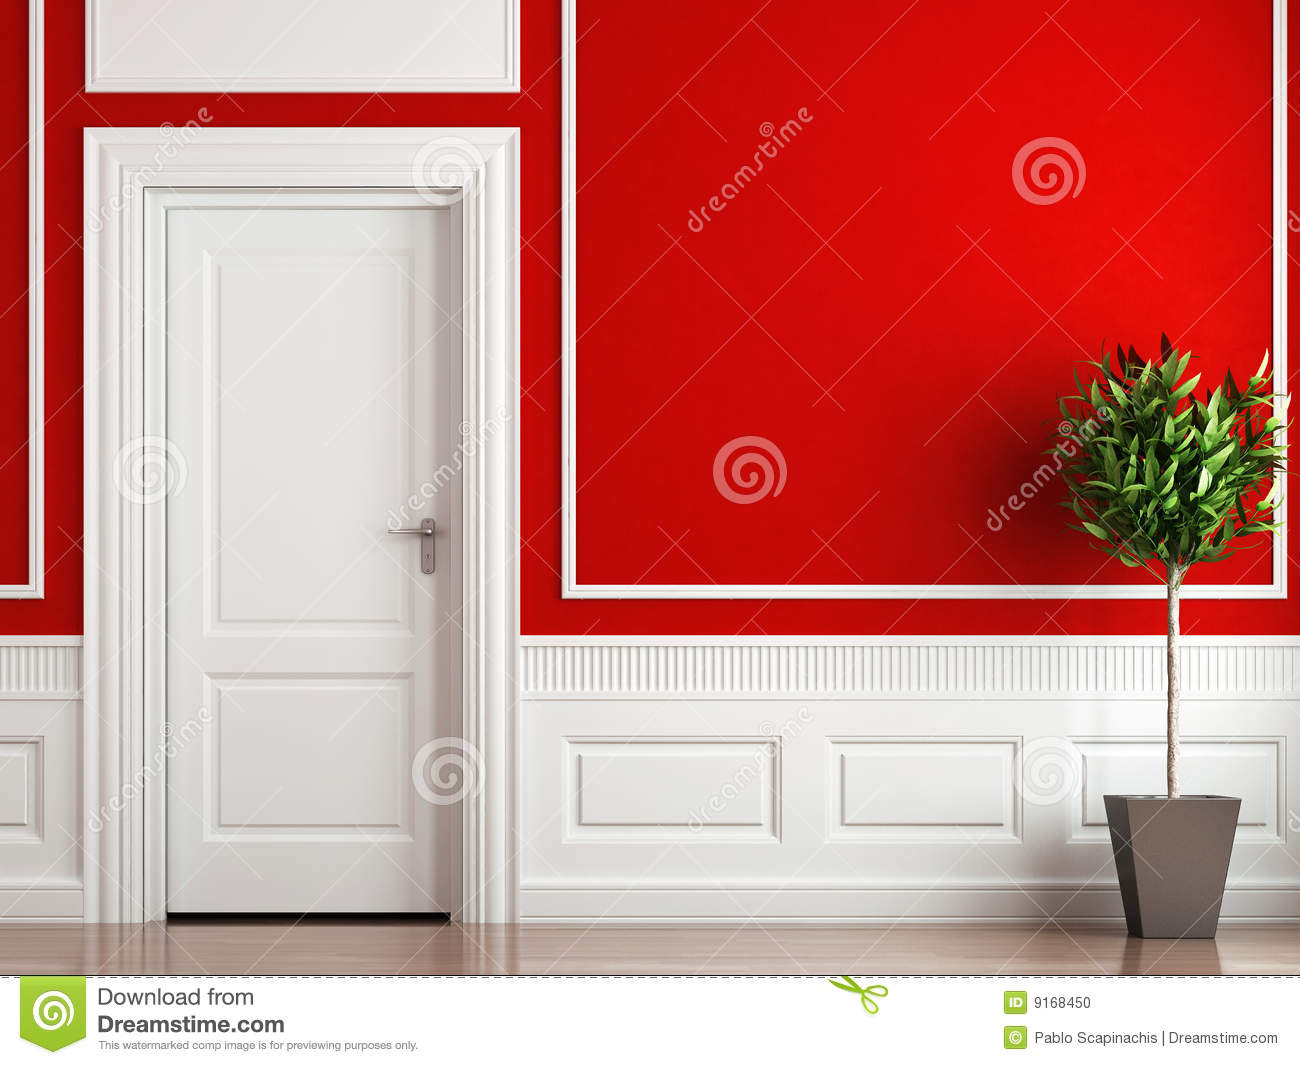 Interior design classic red and white stock photo image - Red white interior design ...